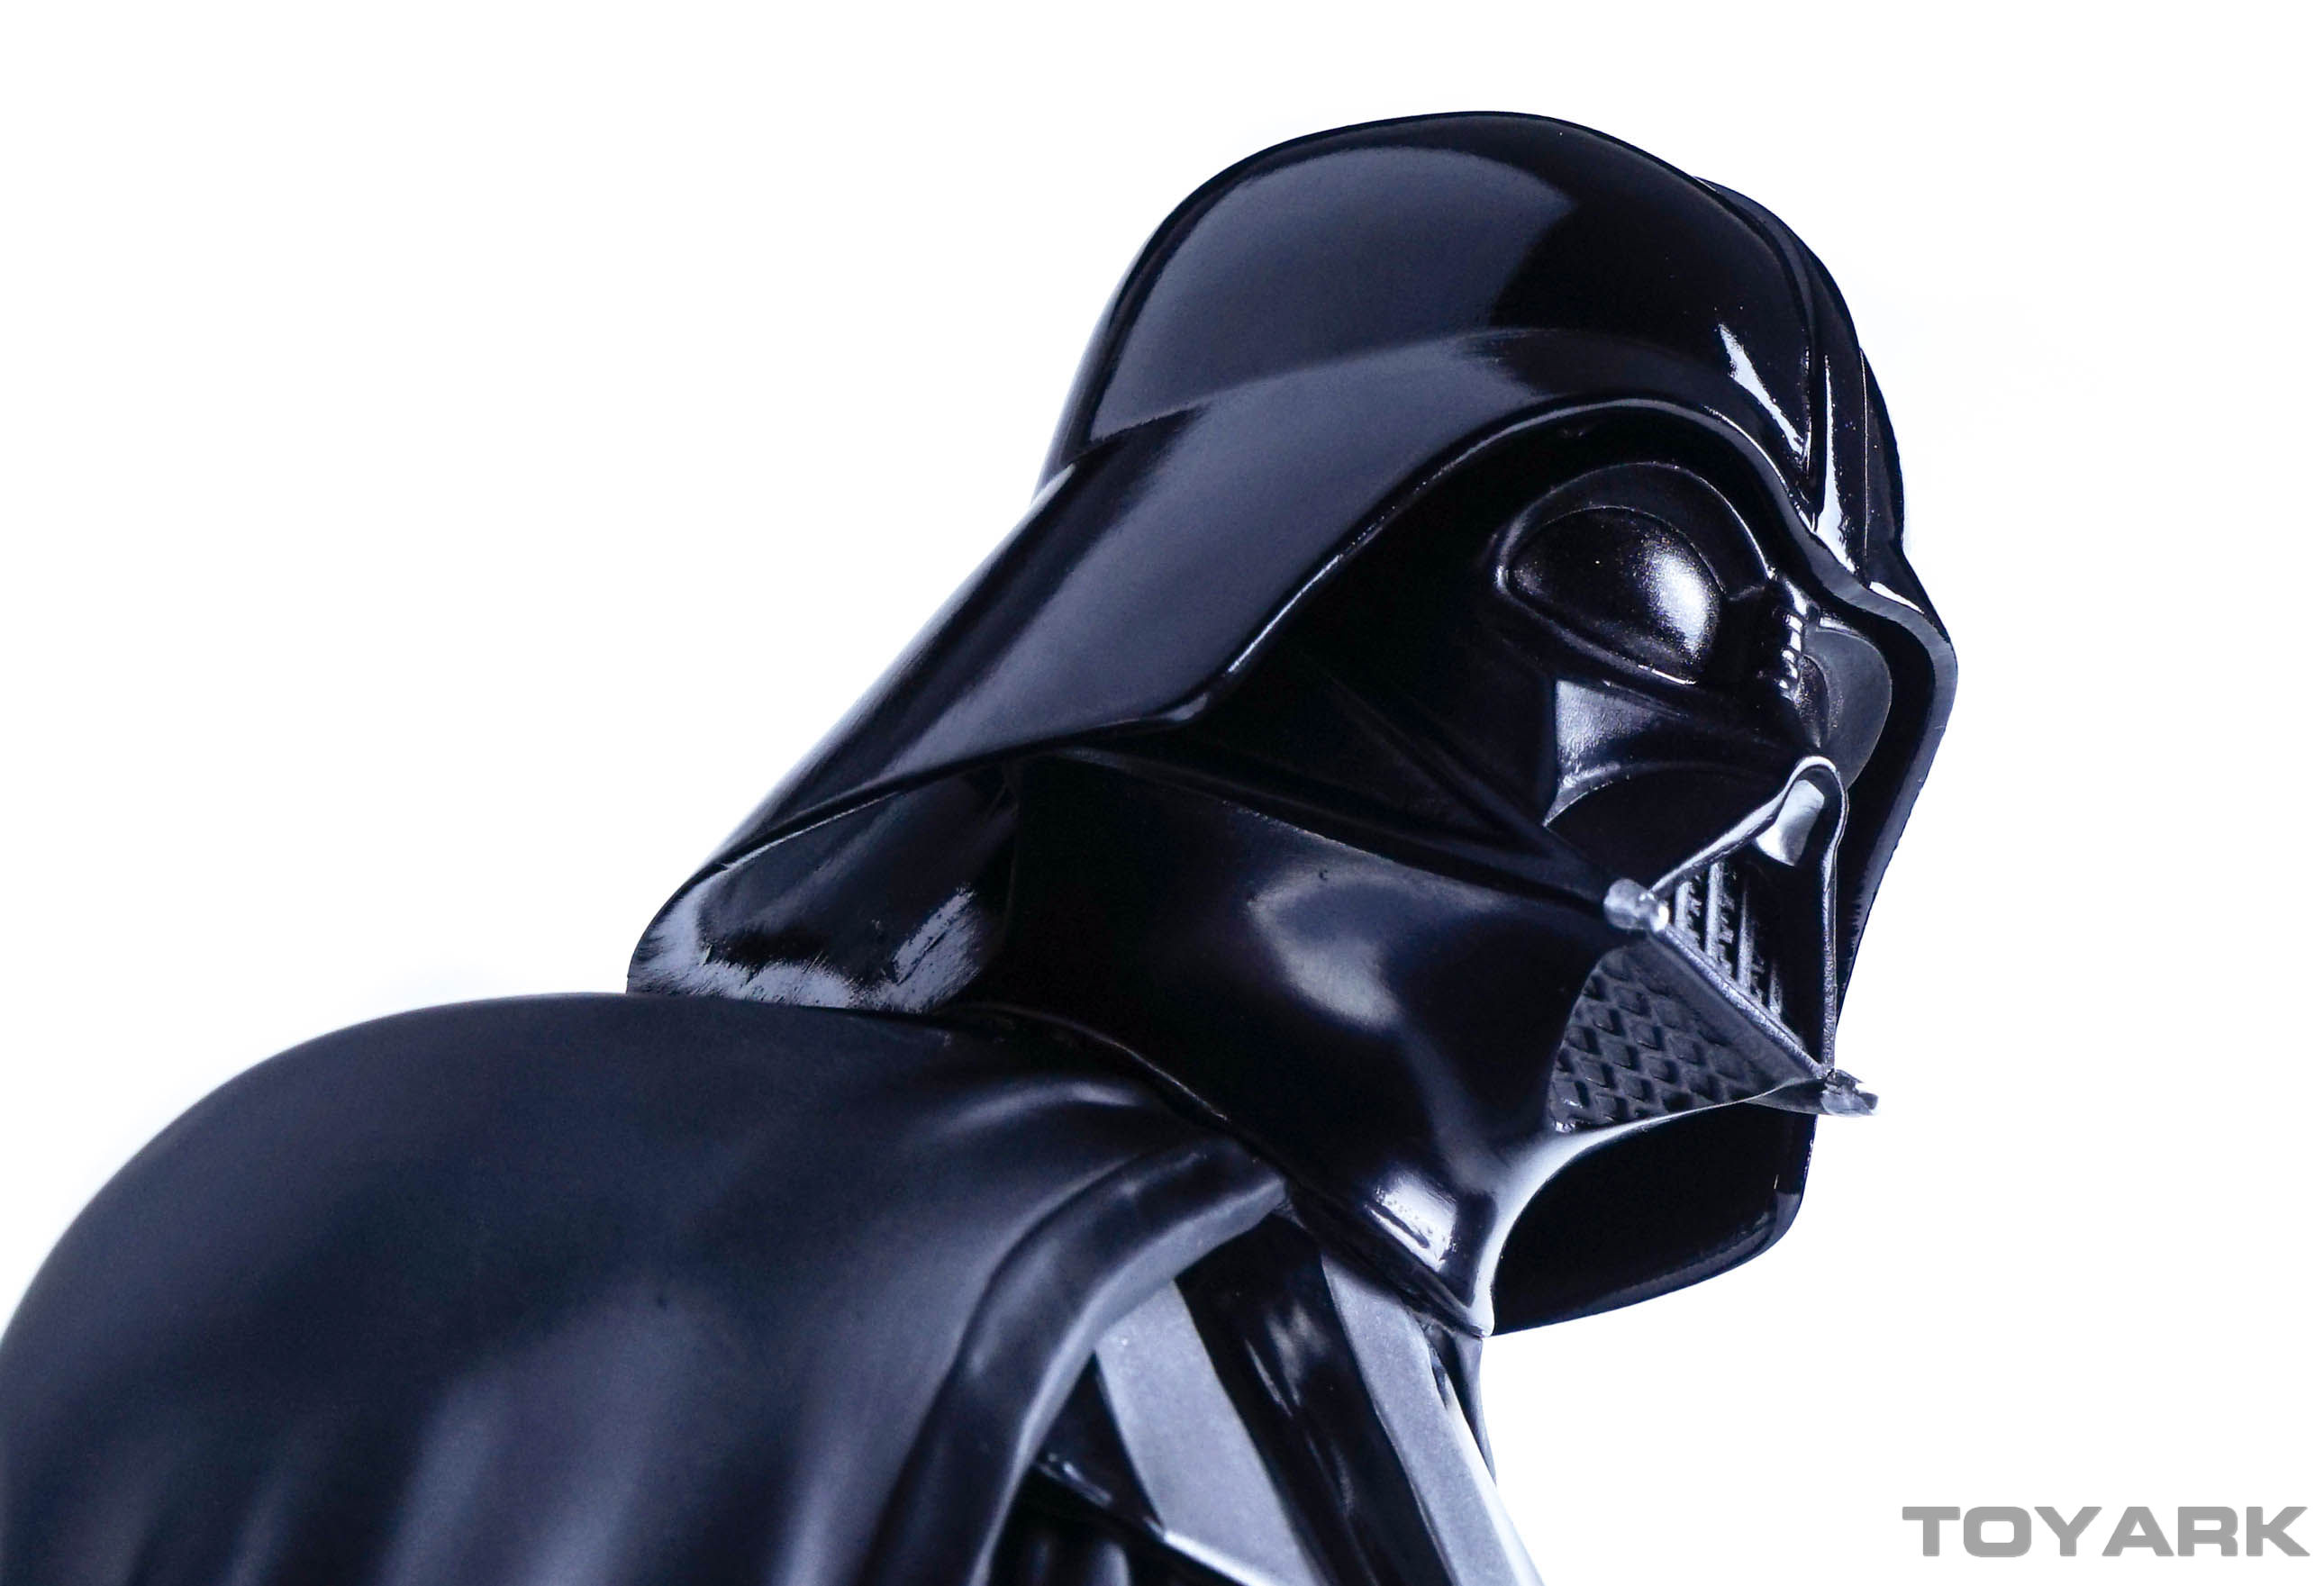 http://news.toyark.com/wp-content/uploads/sites/4/2015/12/Vader-Bust-028.jpg